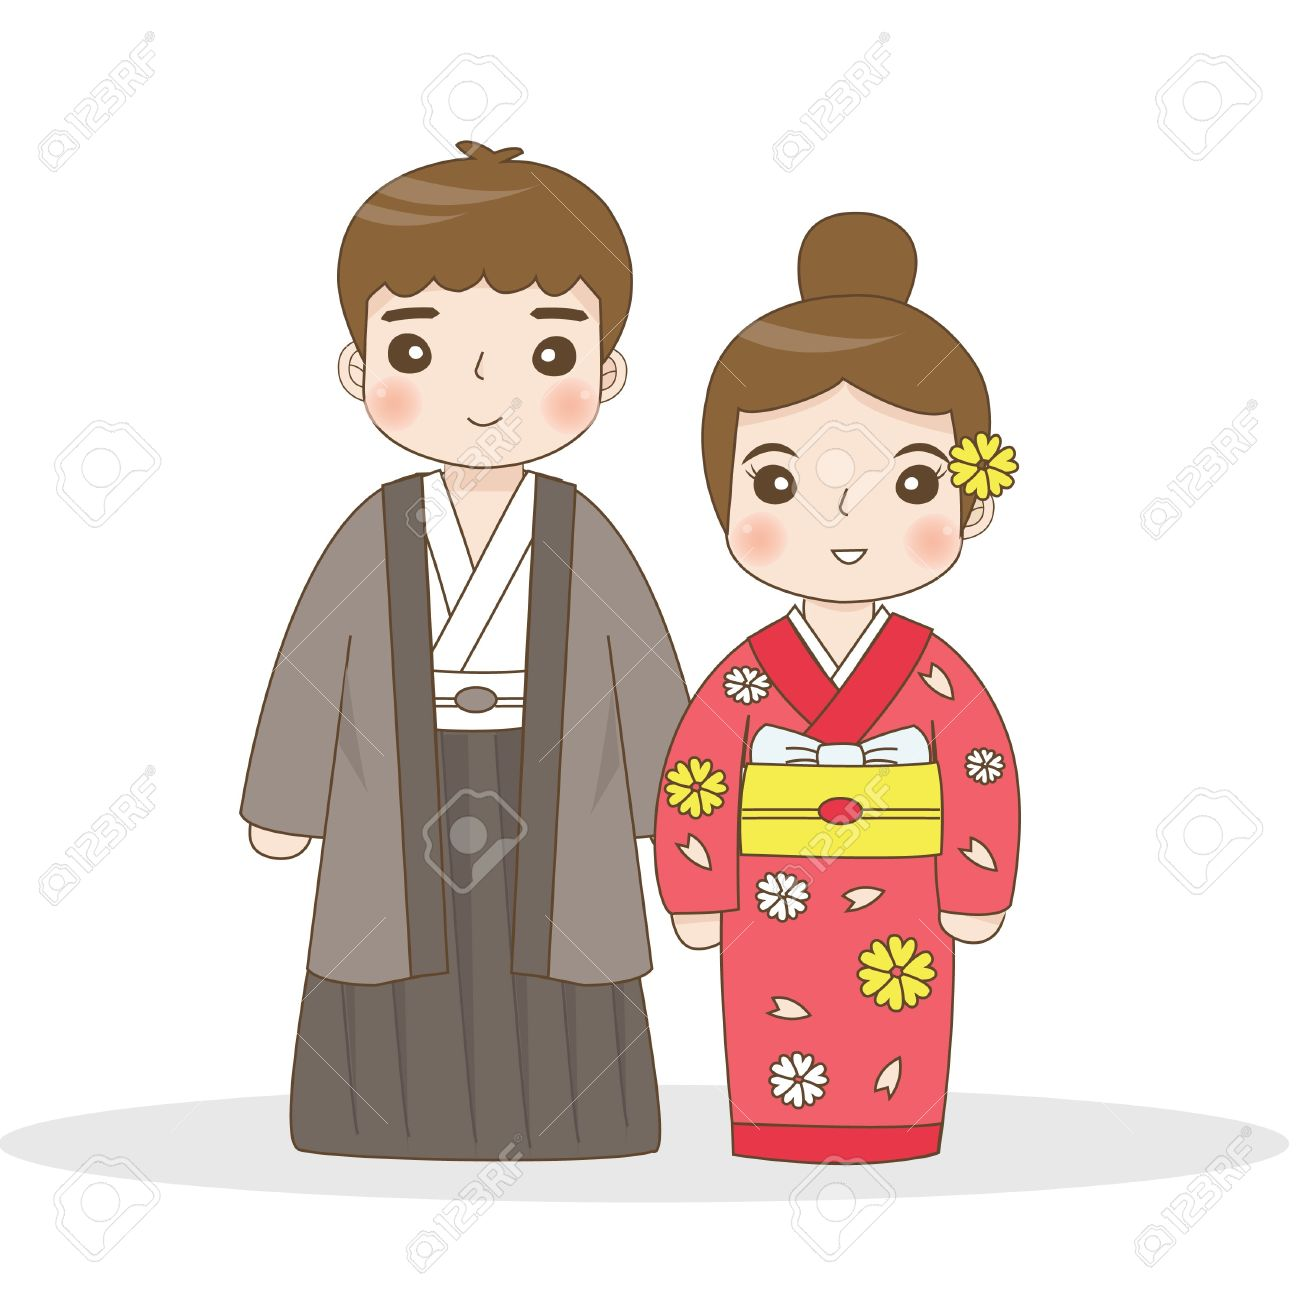 Japanese traditional dress.